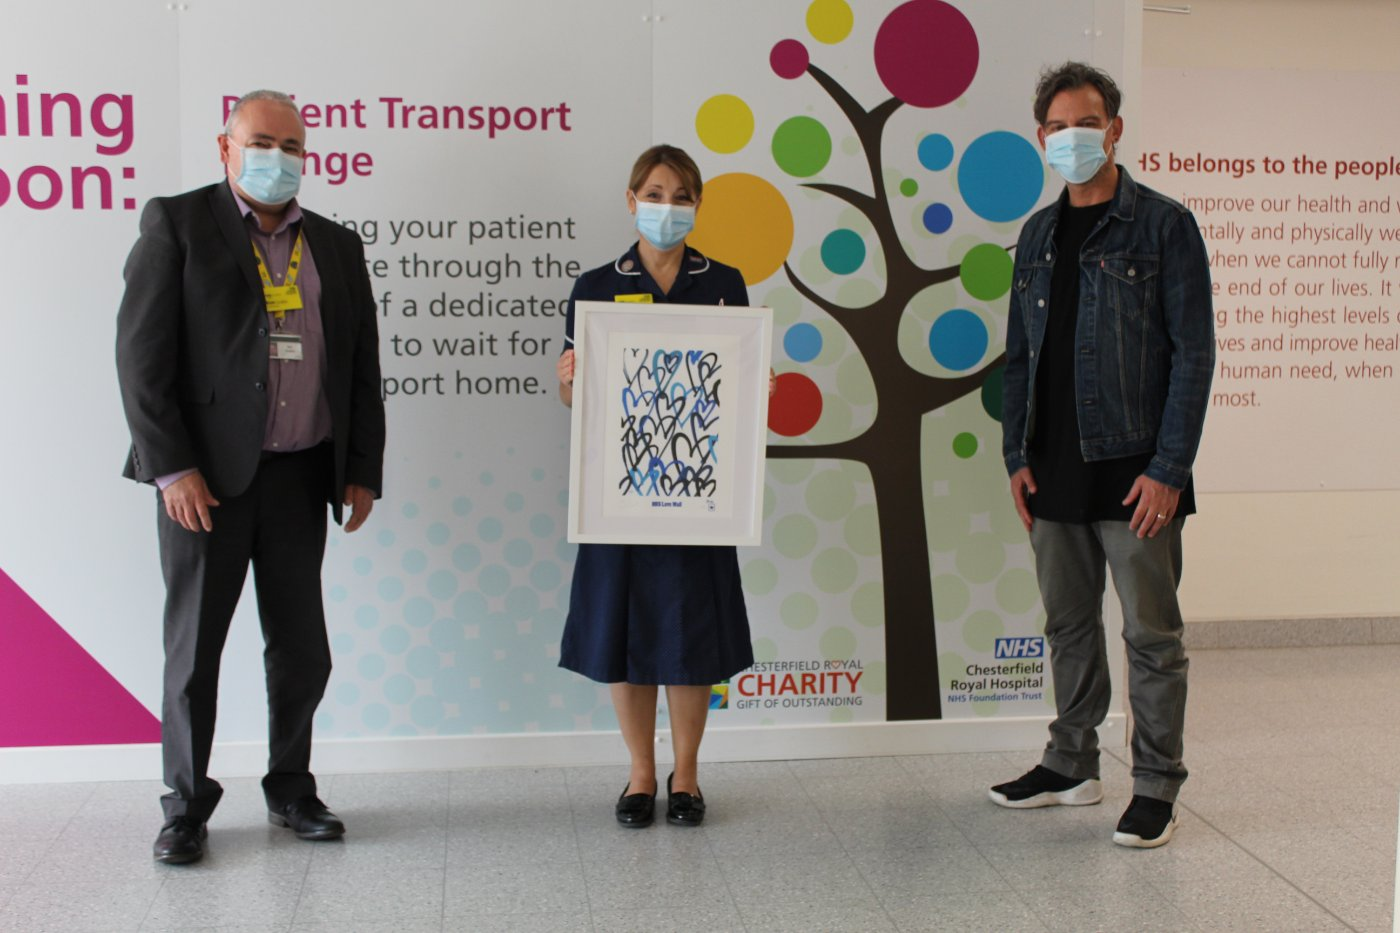 NHS Love Wall Raises Spirits and Money for #ProtectYourNHS